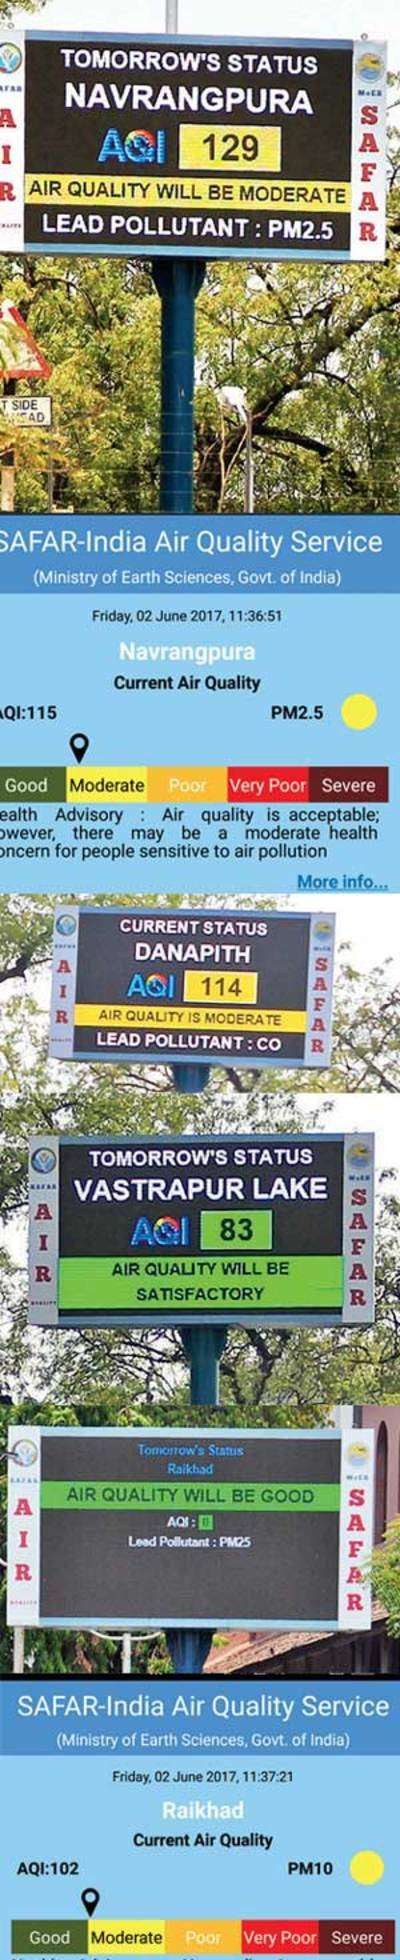 What to believe? Air pollution data on LED screen not in sync with app